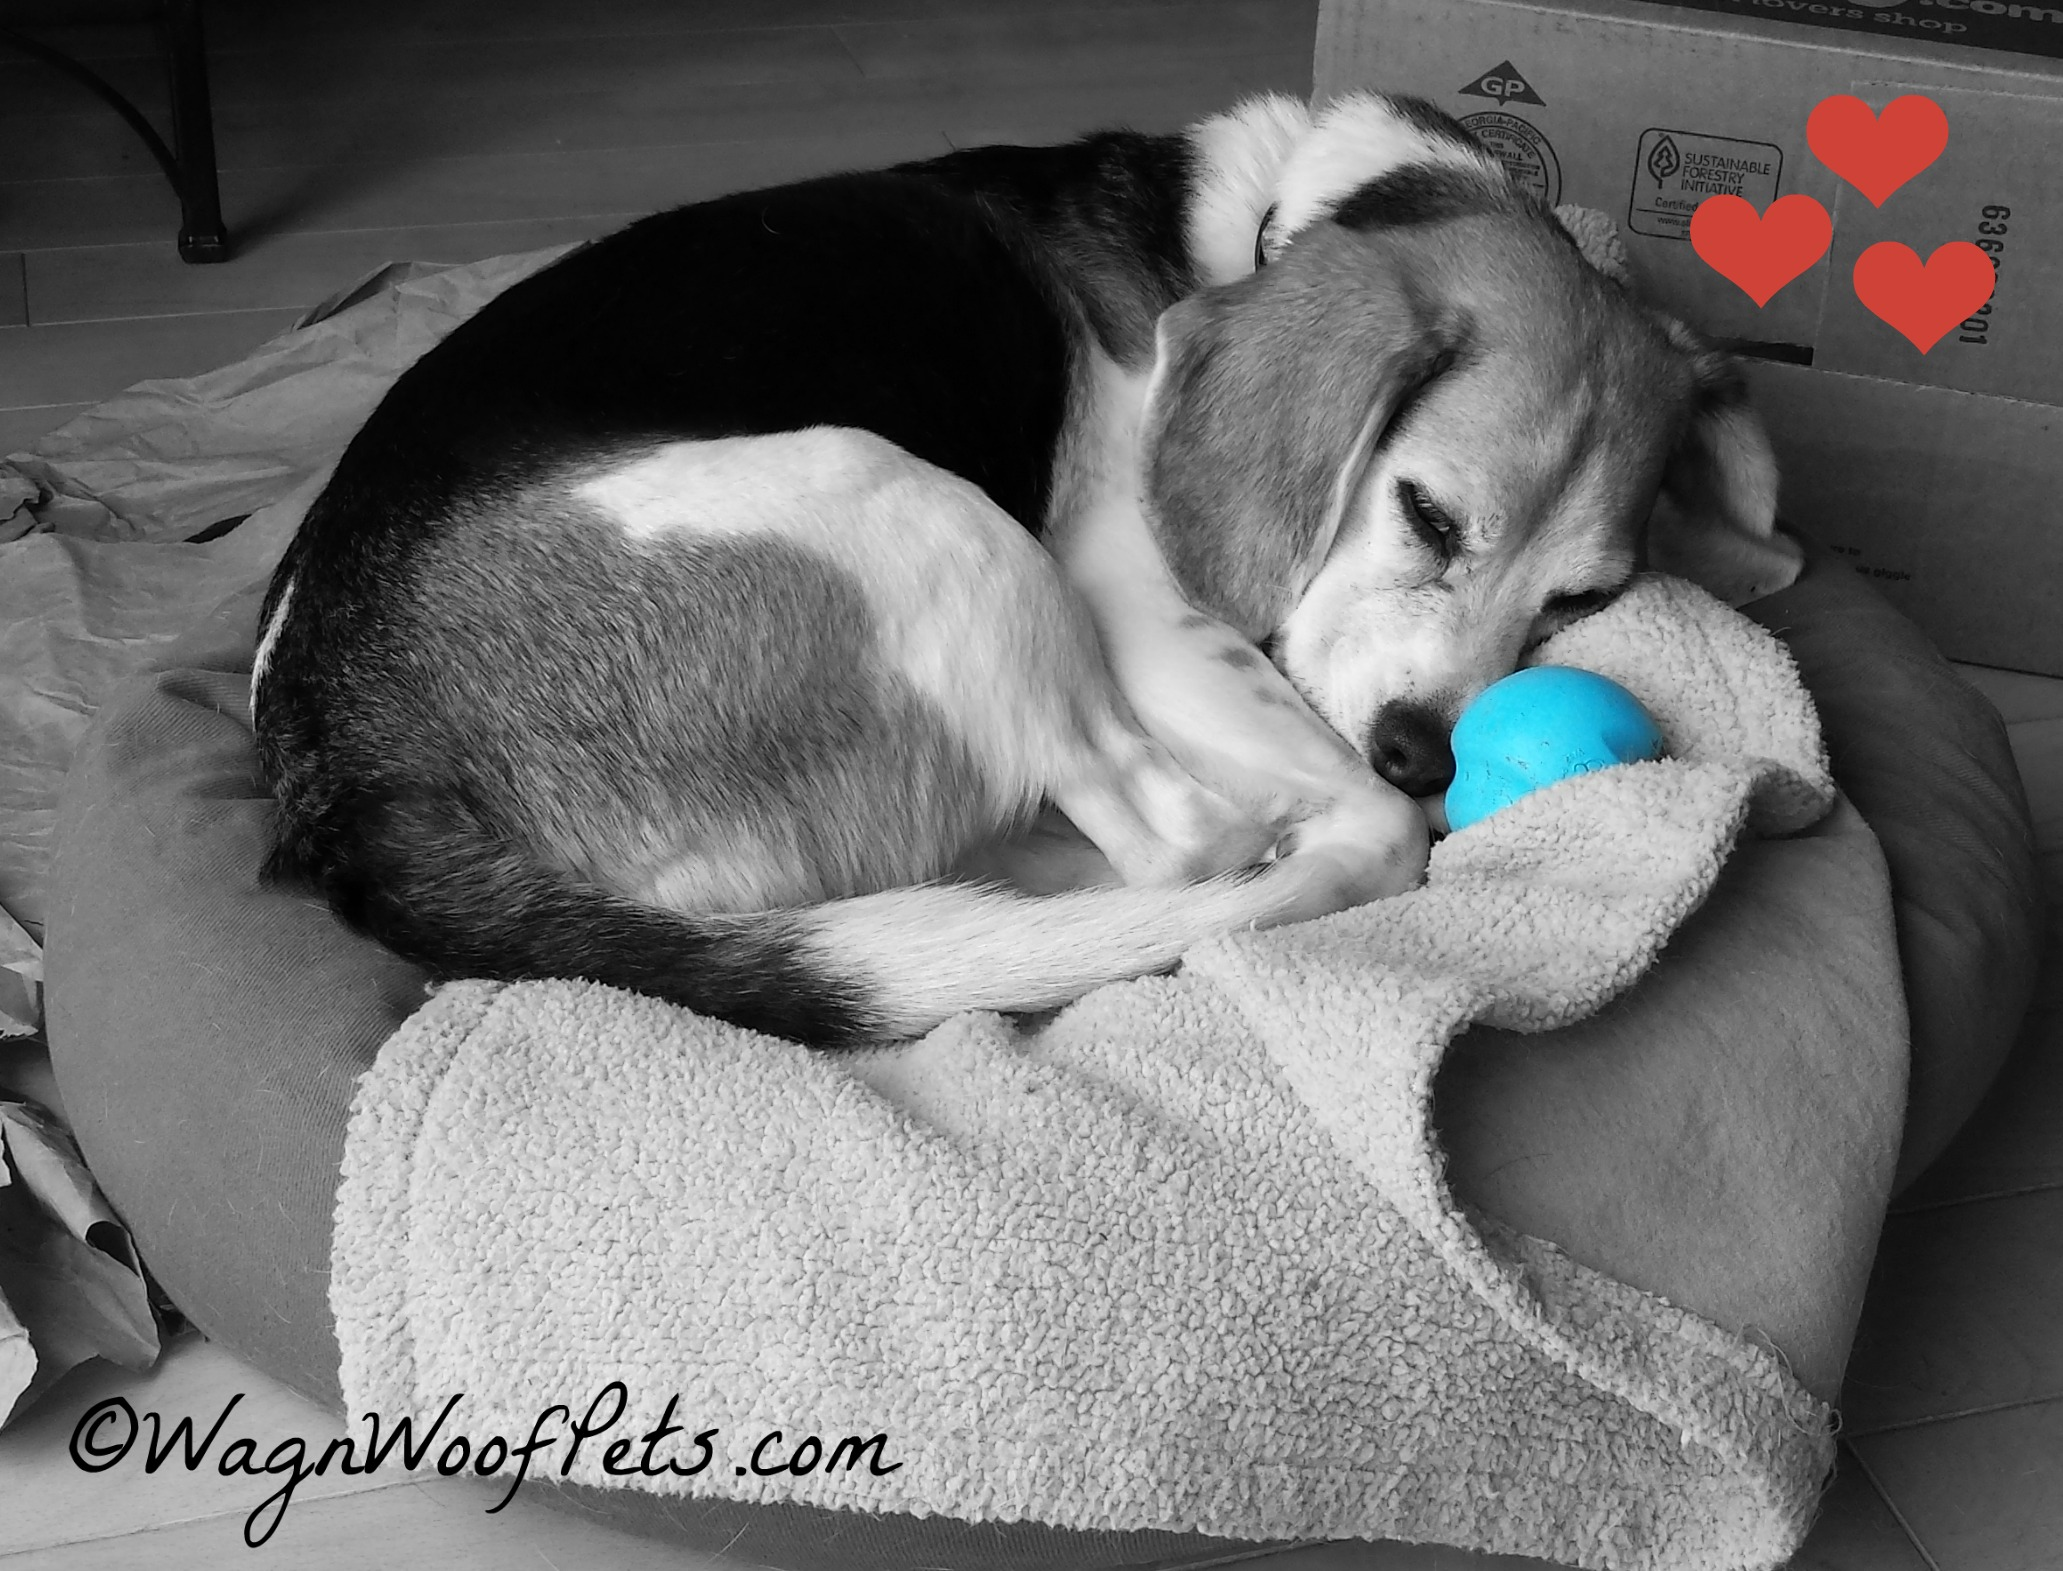 What?  Don't bother me, Mom, I'm snuggling with my ball!